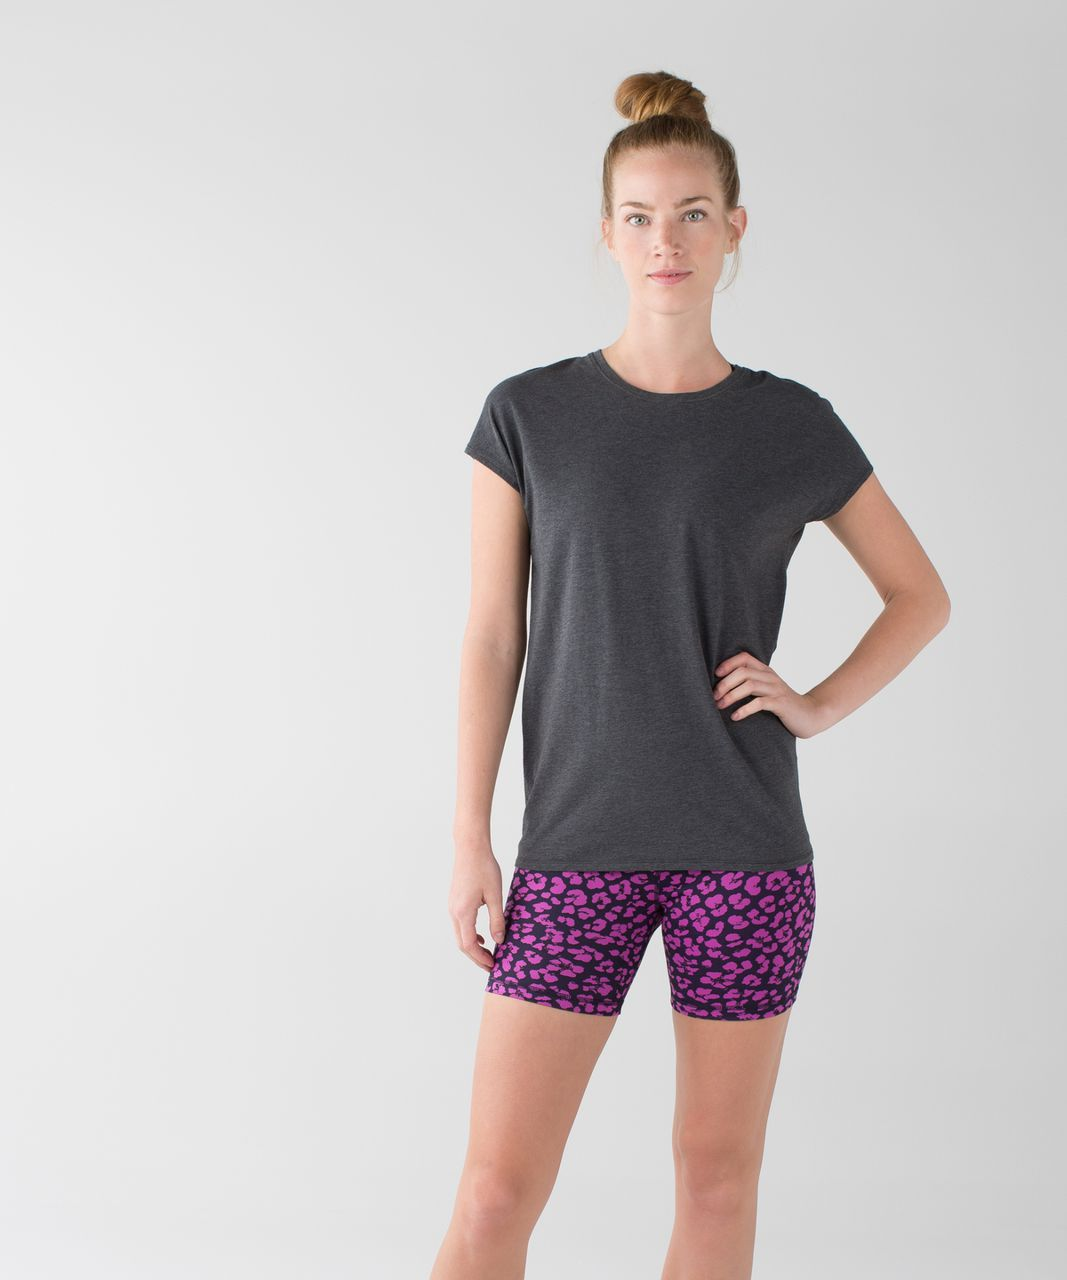 Lululemon Groove Short II (Regular) - Mini Cherry Cheetah Ultra Violet Naval Blue